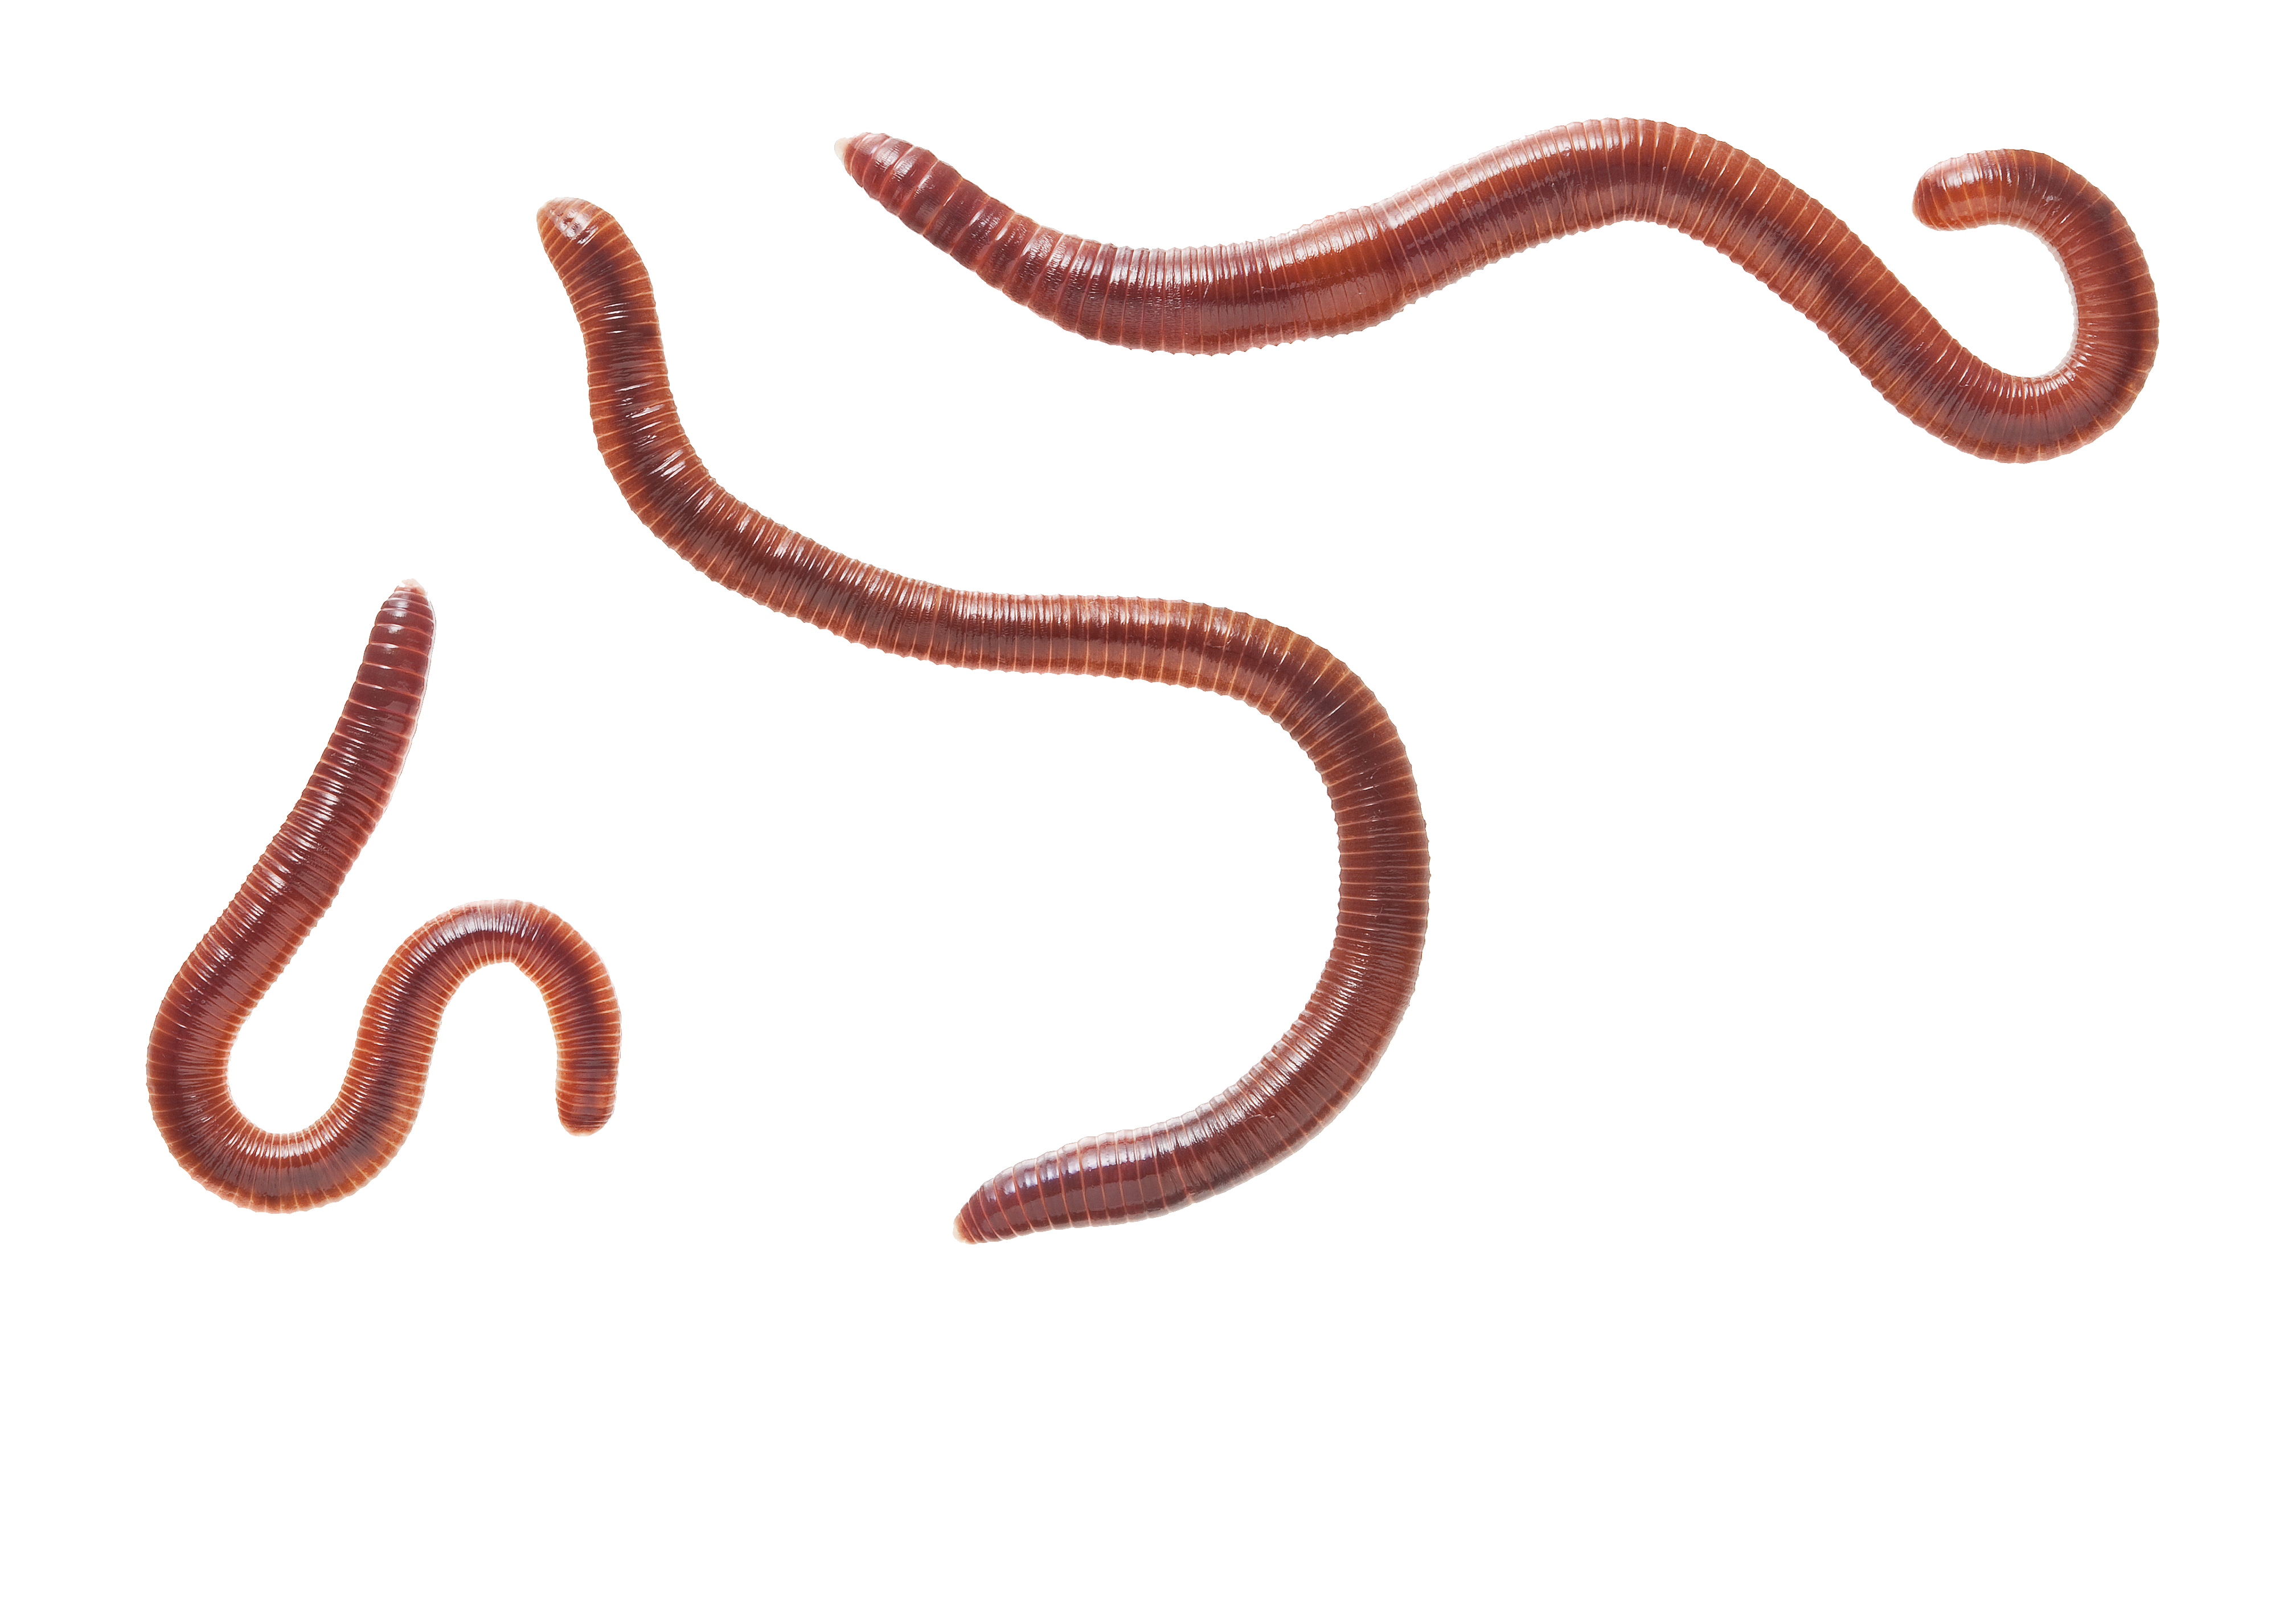 Earthworm png image with. Worm clipart transparent background